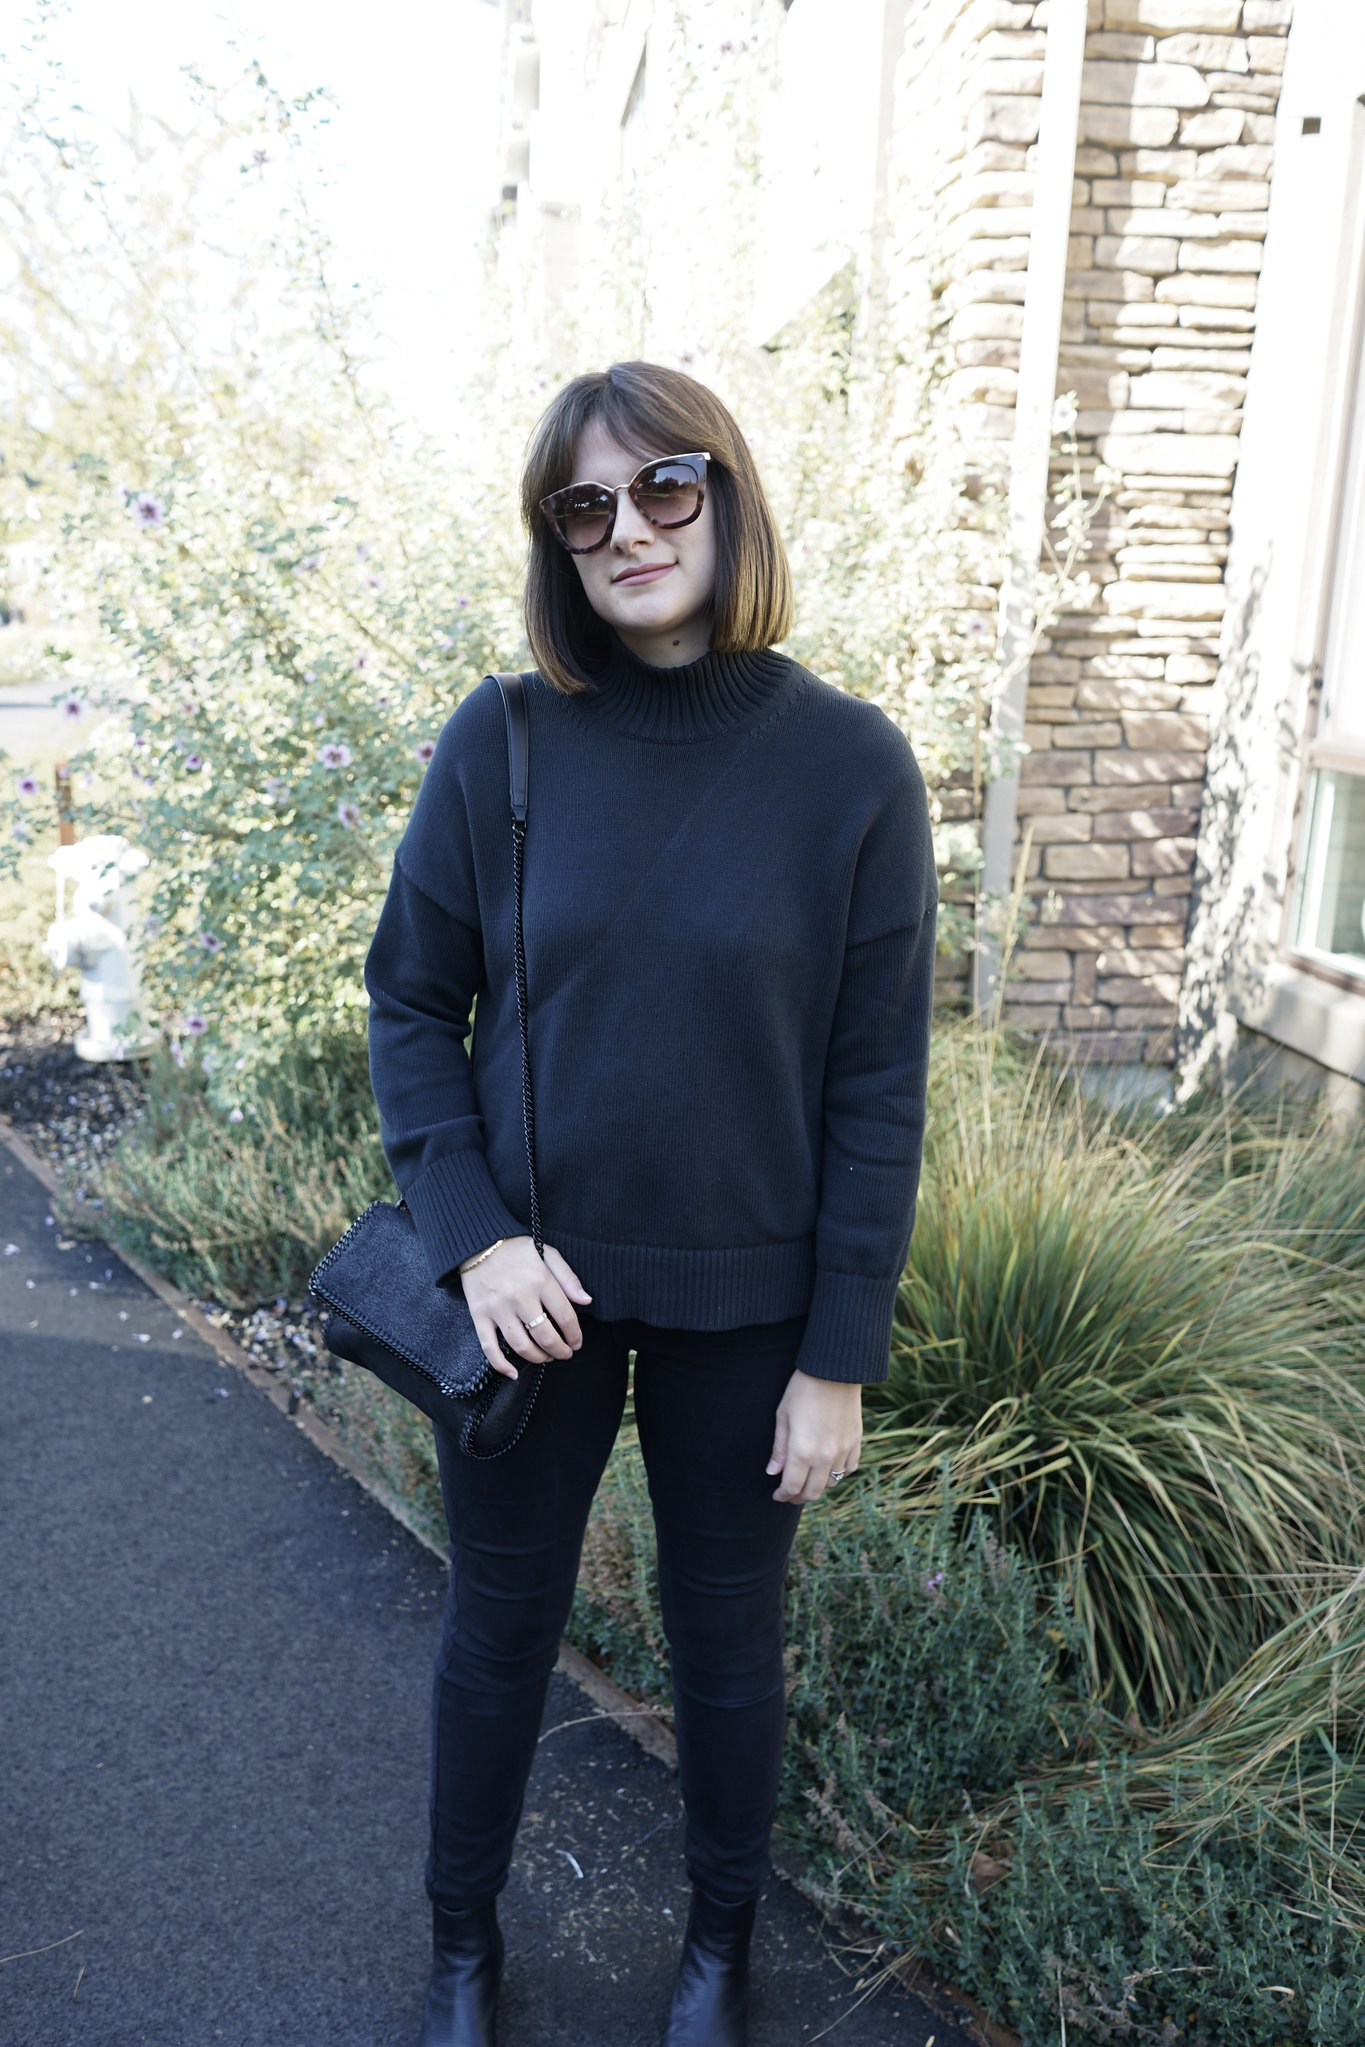 Everlane, All black, OOTD, mom style, mom blog, mommy blogger, Fashion, American Apparel, Senso booties, Steall McCartney, Falabella bag